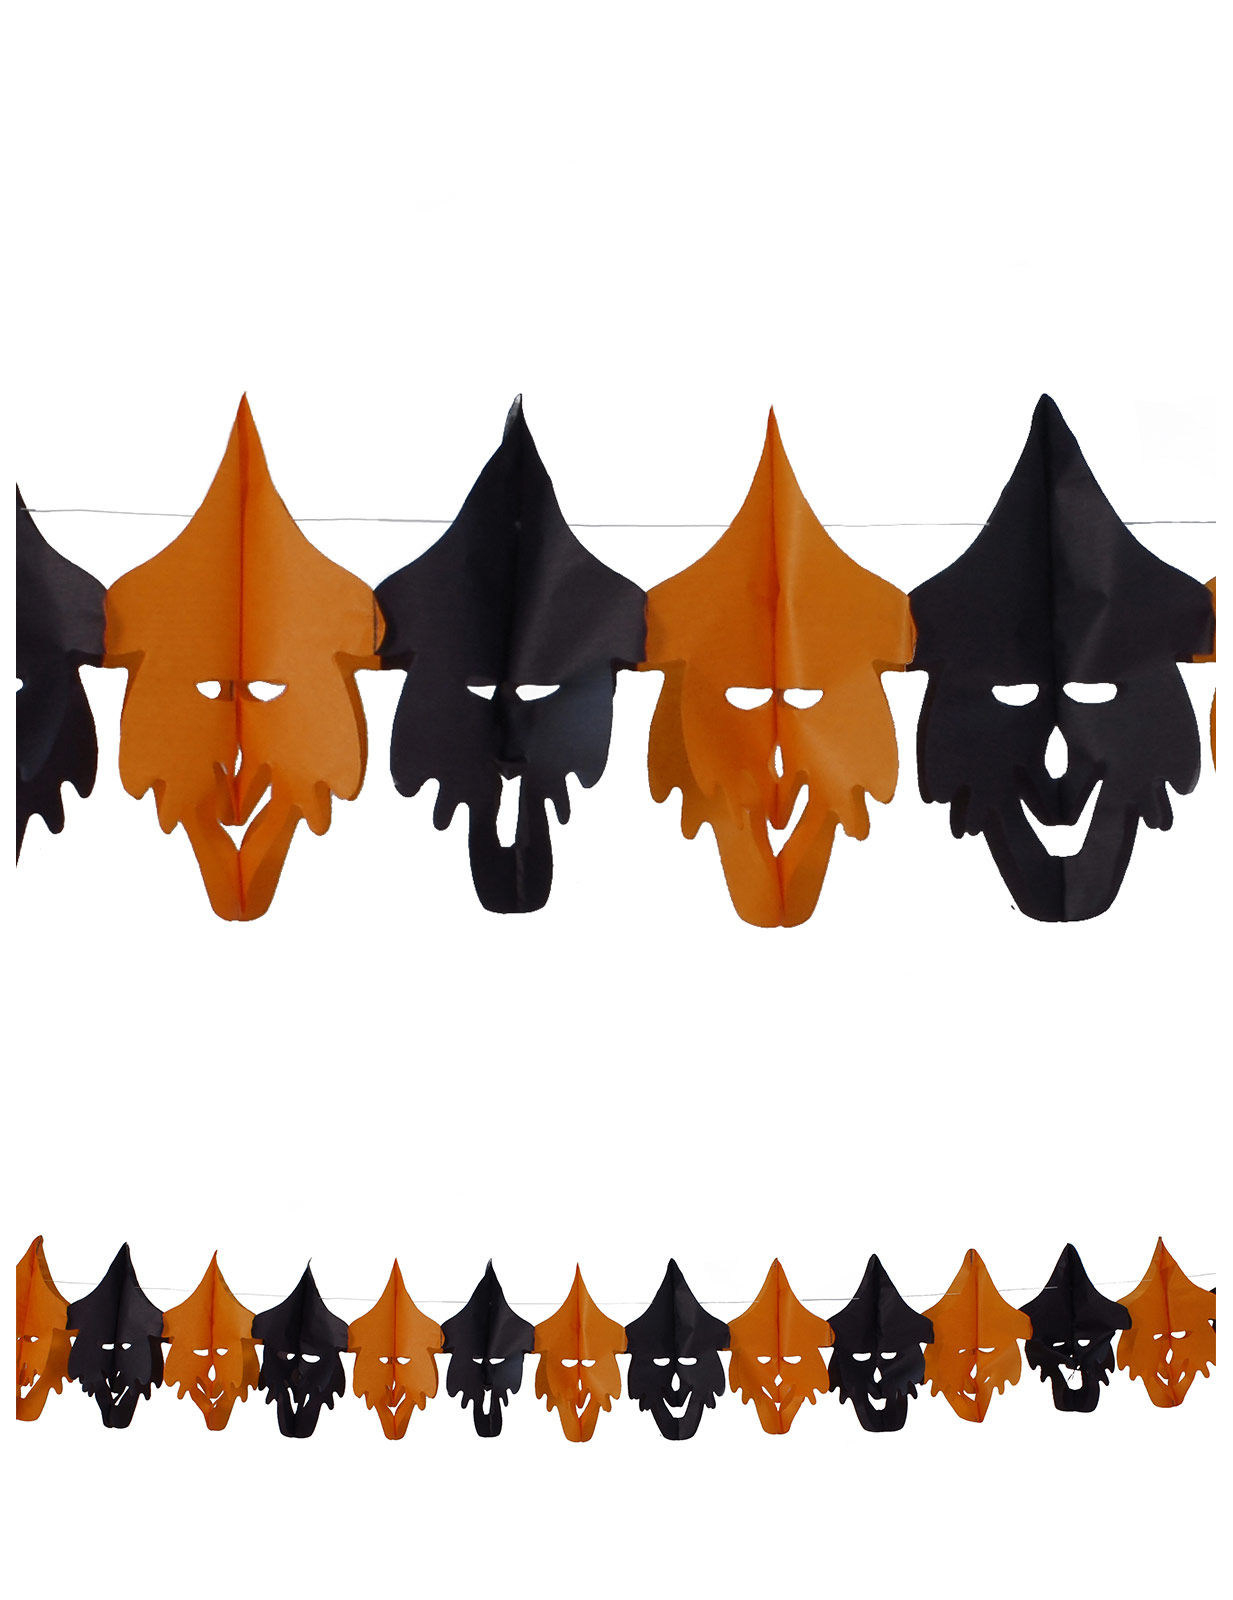 Deko Hexen Lachende Hexen Girlande Halloween Party Deko Orange Schwarz 400x20cm